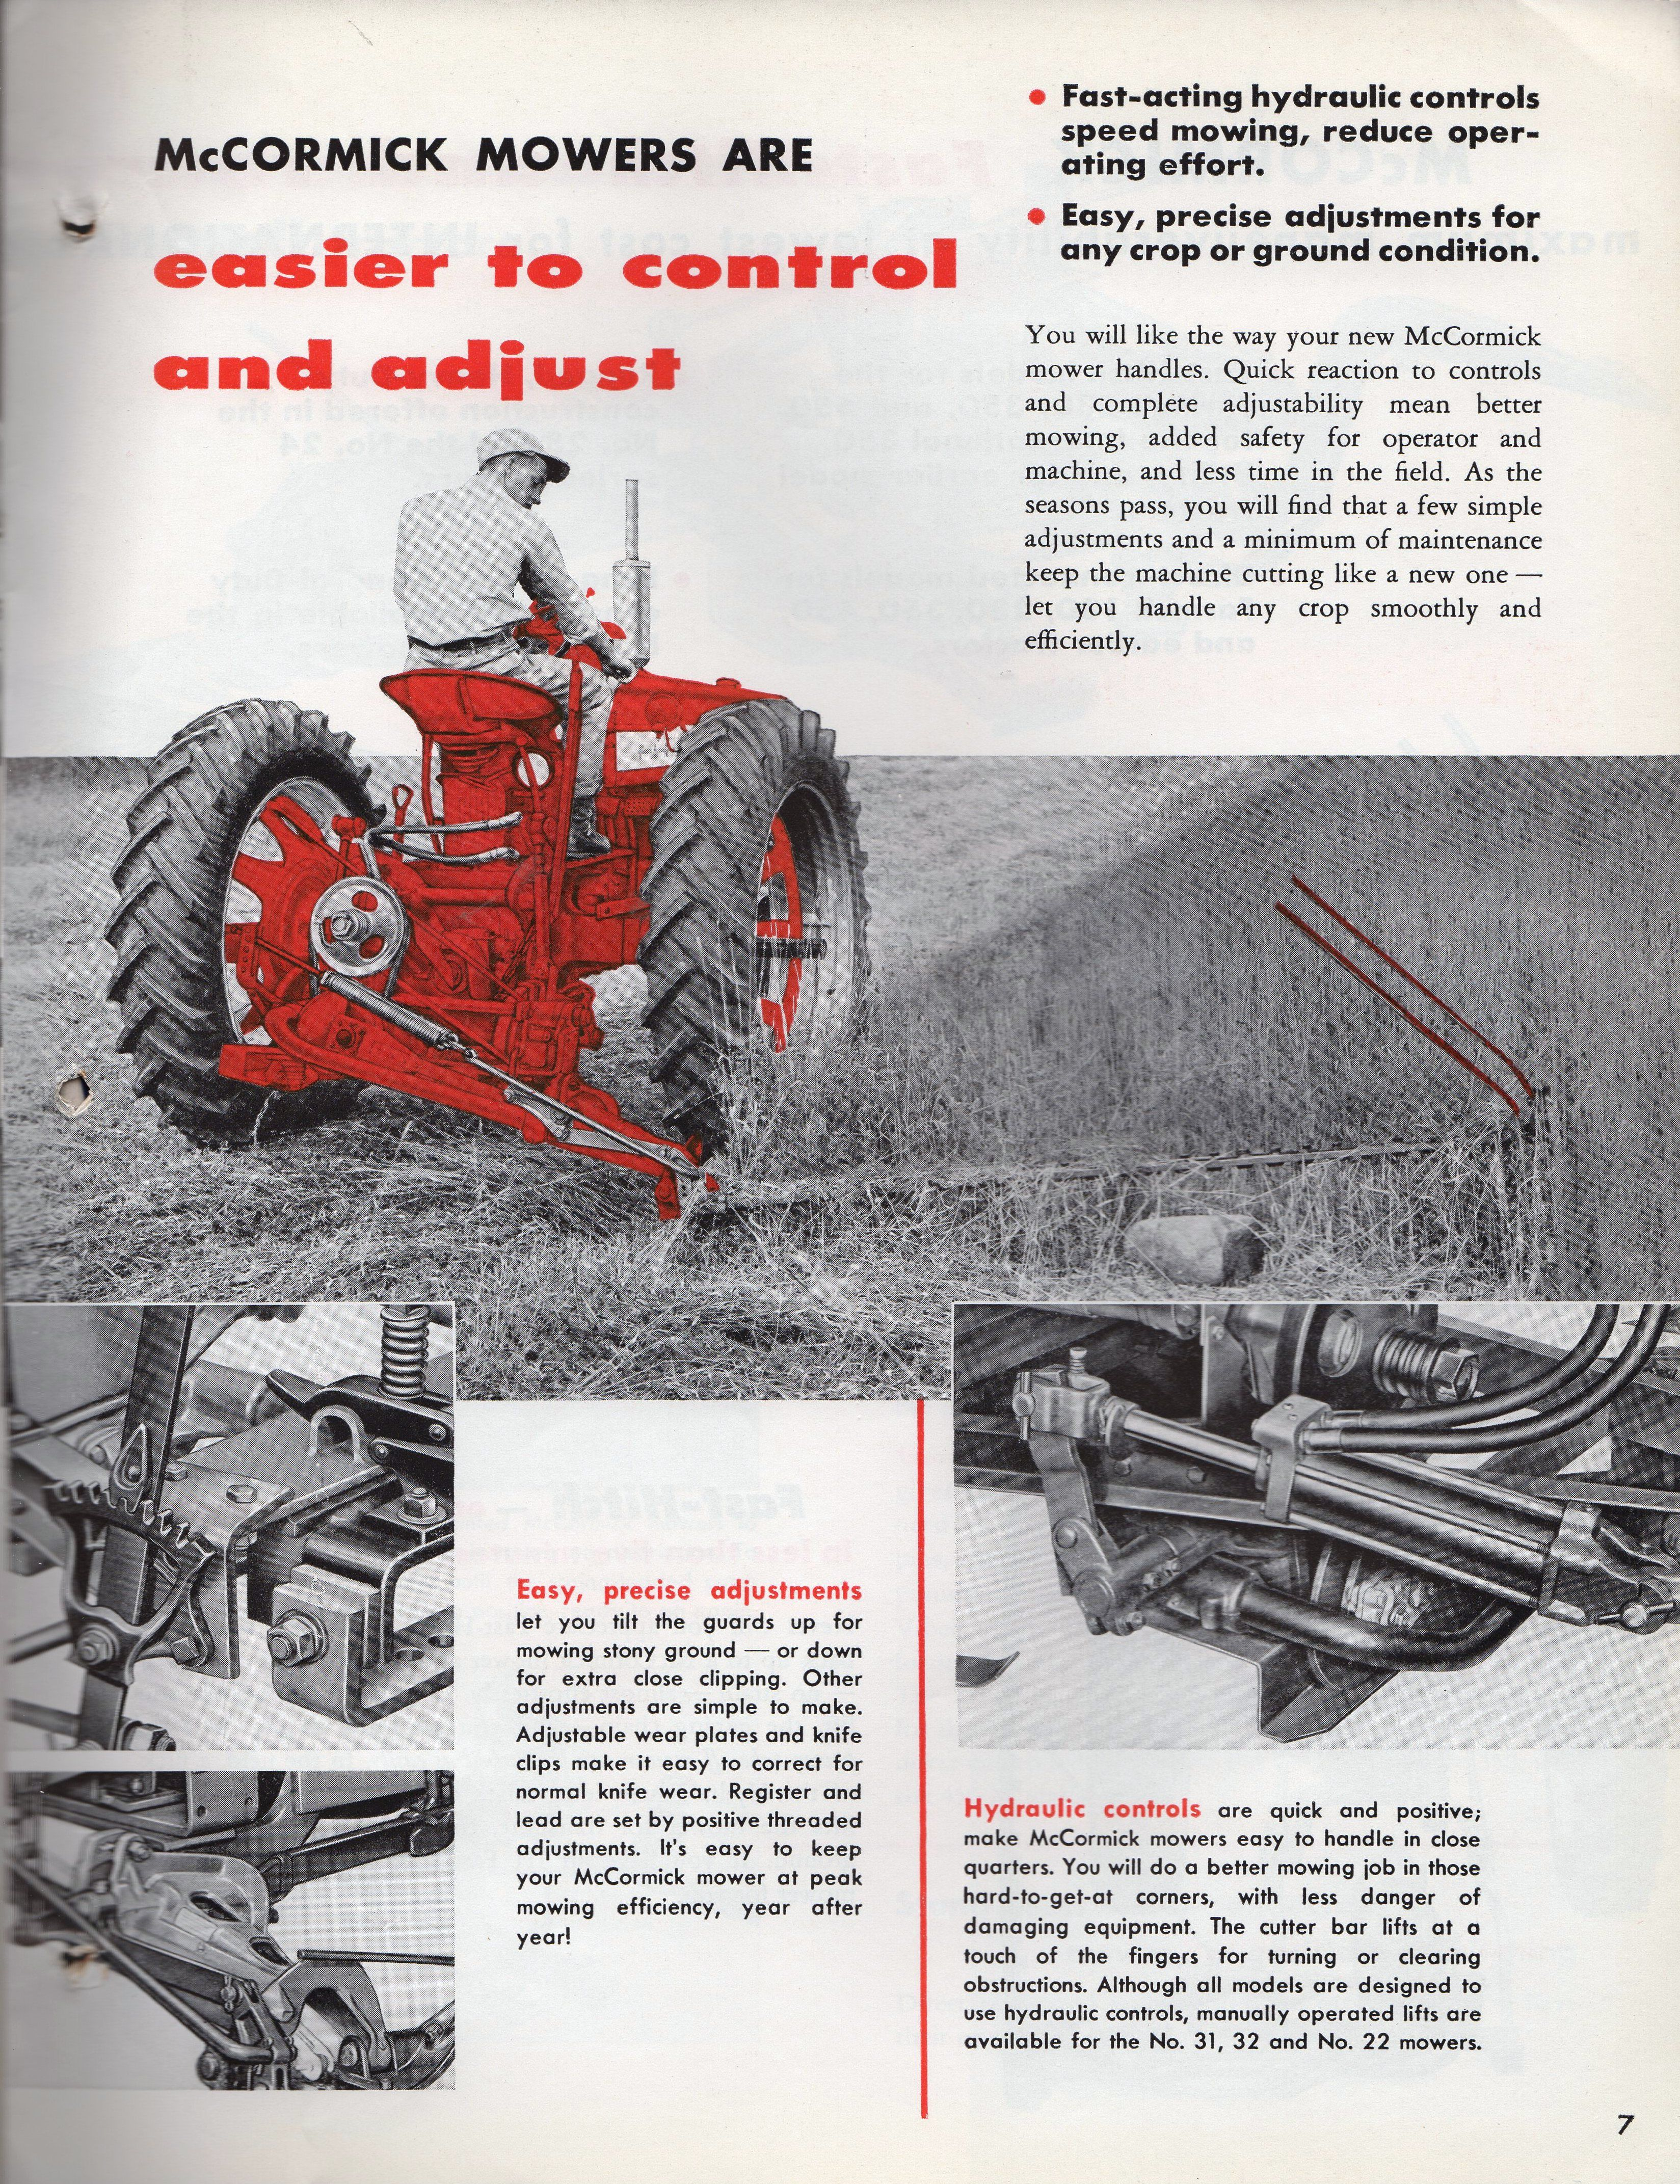 Pin By Brady Boy On International Harvester Advertising Old Farm